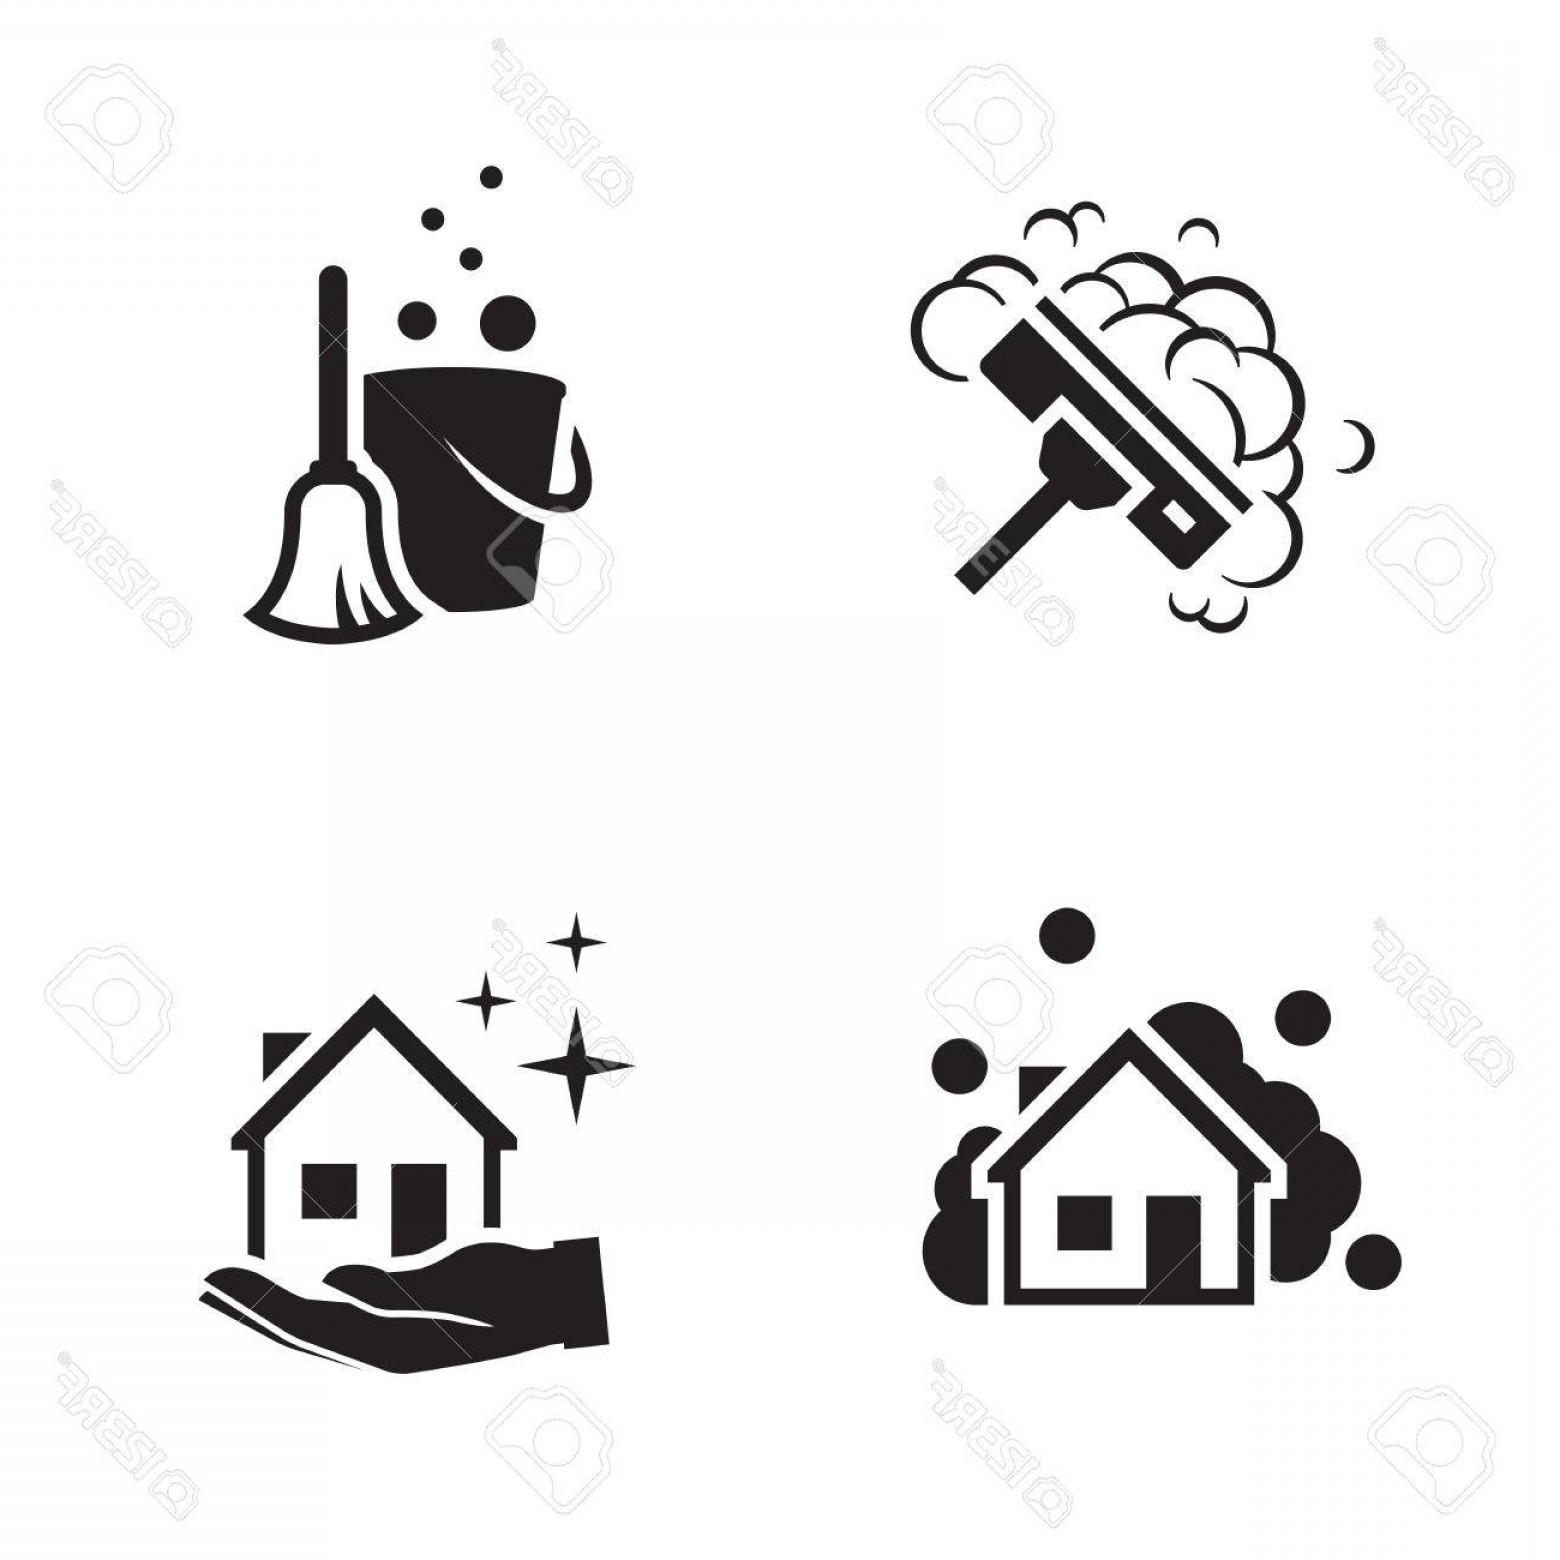 1560x1560 Photostock Vector House Cleaning Services Vector Logo Black Icon